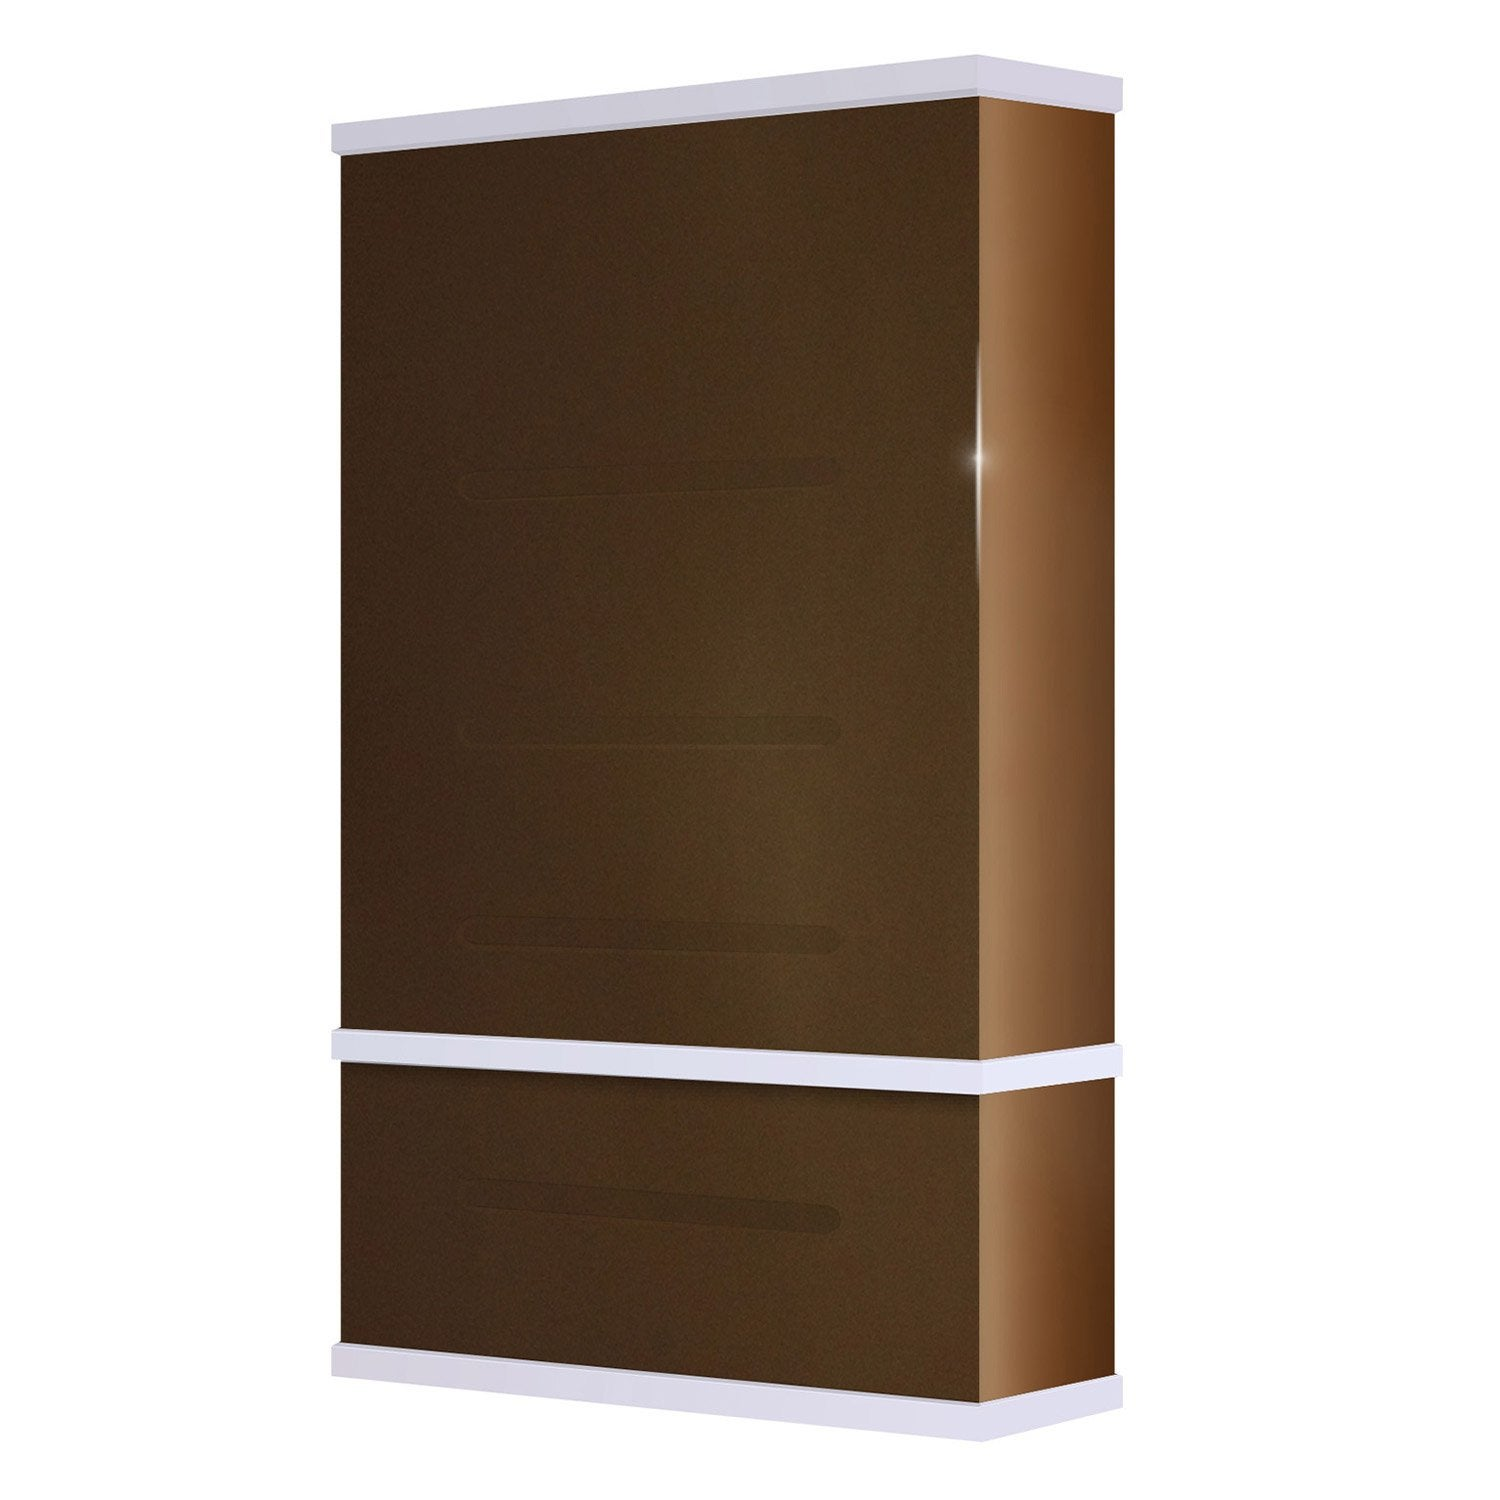 chauffe eau lectrique vertical mural 30 l leroy merlin chauffe eau 100l leroy merlin. Black Bedroom Furniture Sets. Home Design Ideas